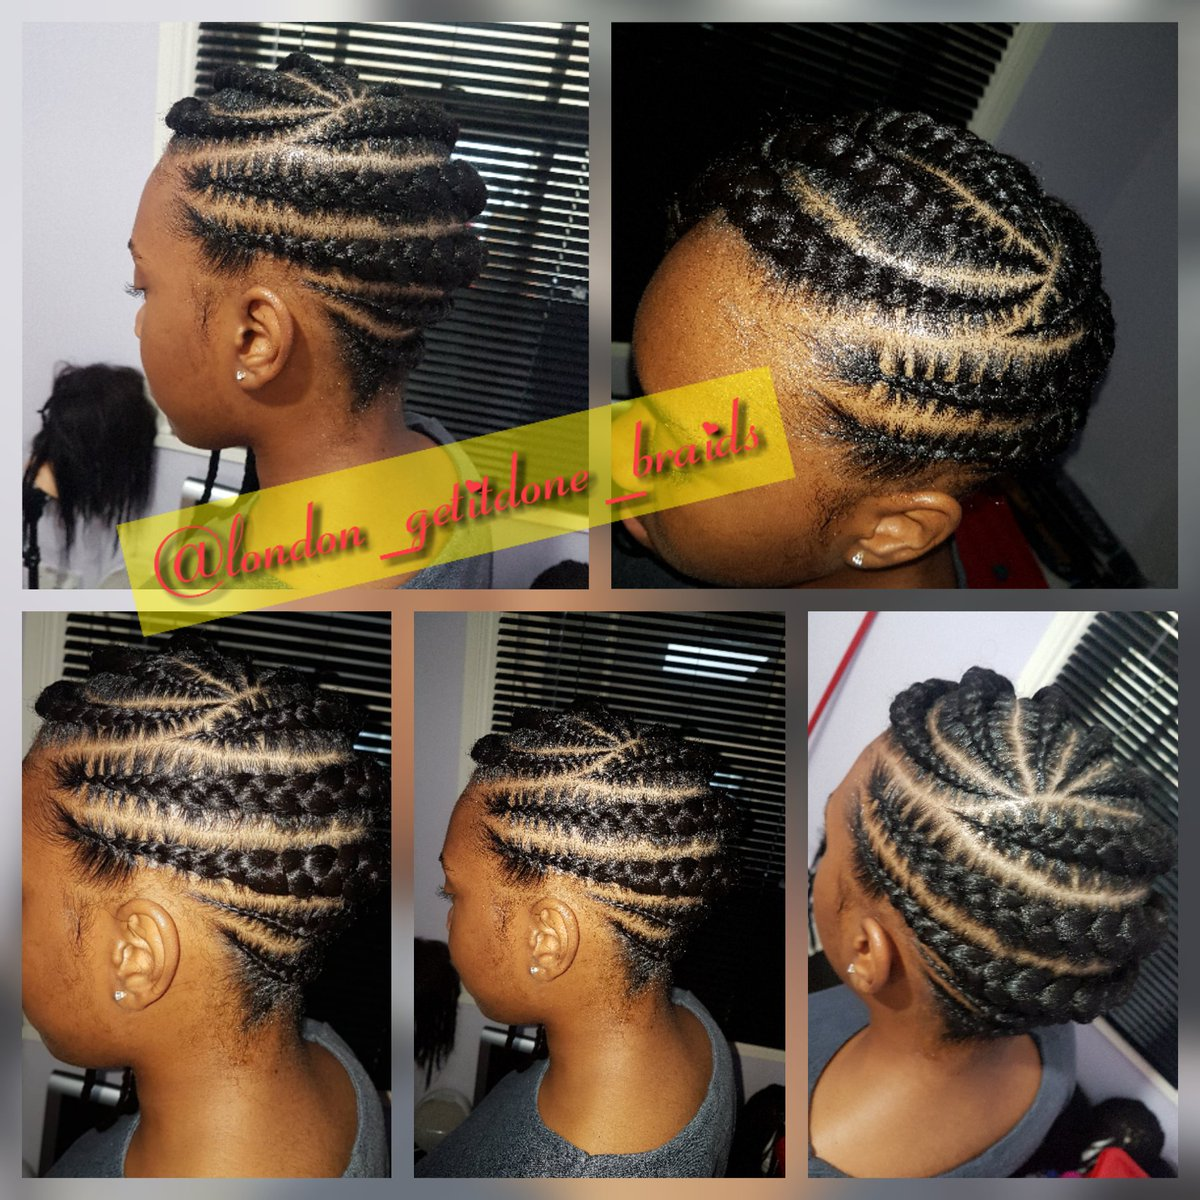 London Braids On Twitter Lemonade Jumbo Braids Hairstyle